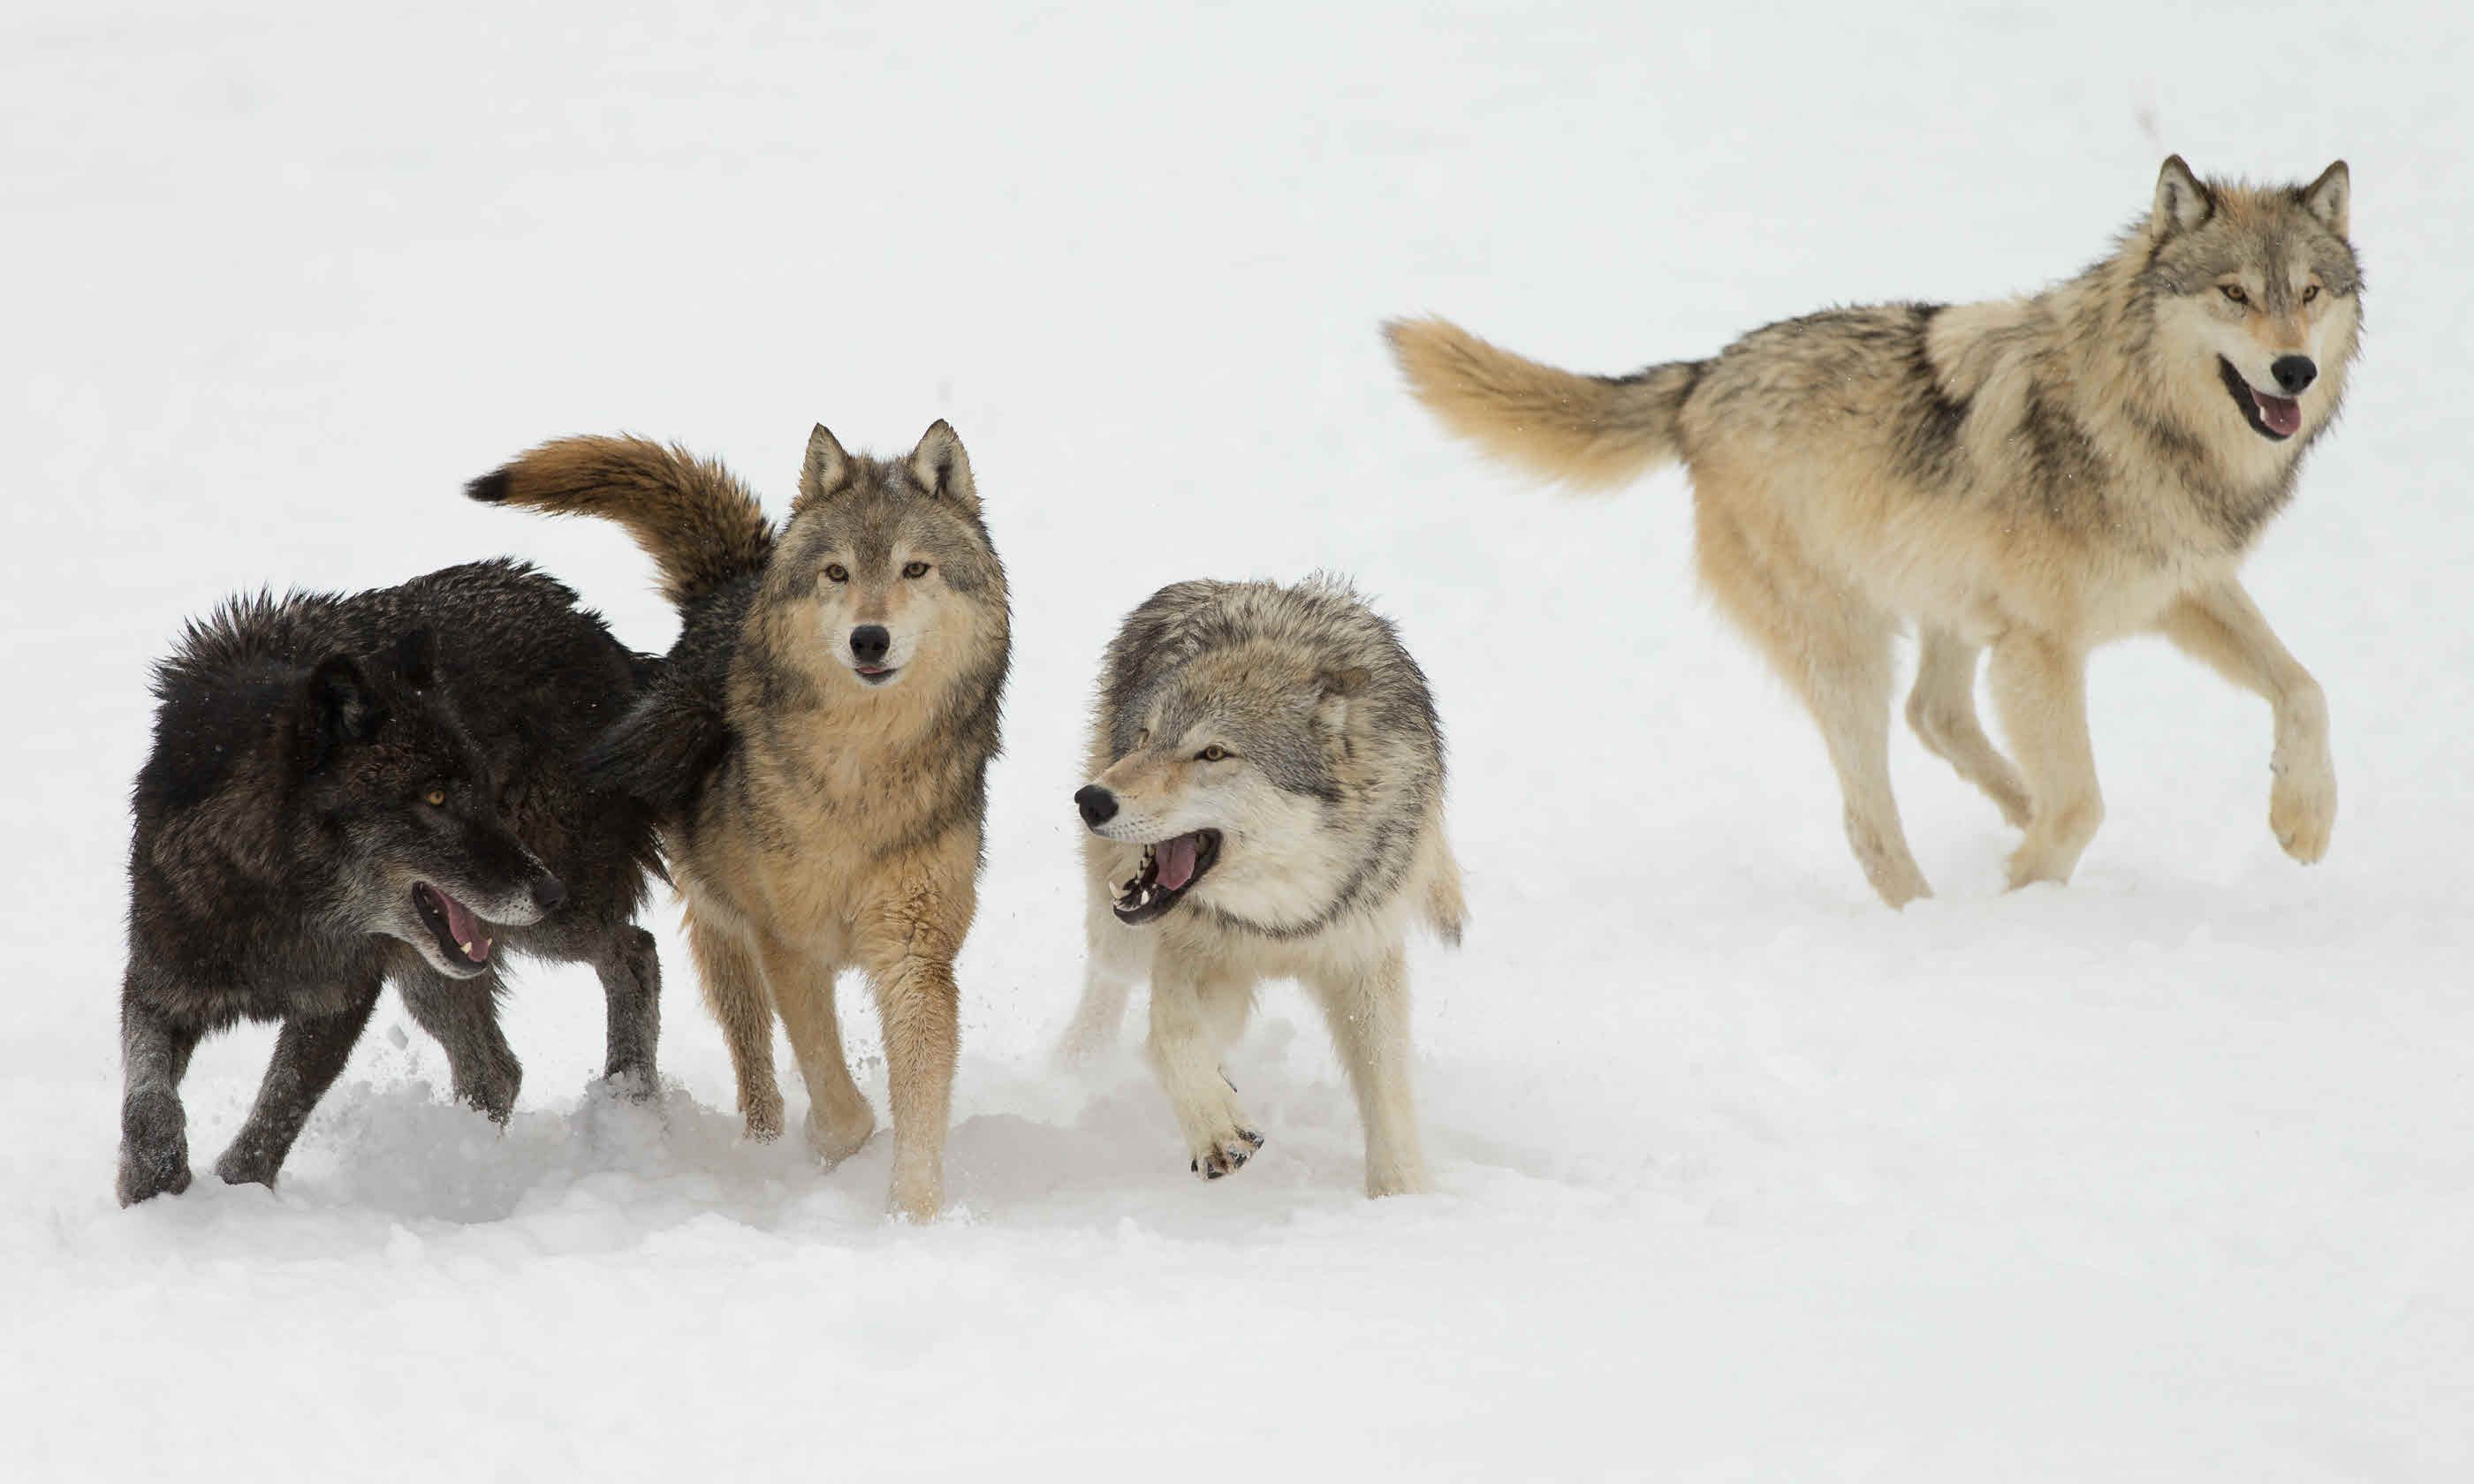 Wolf pack in snowy field (Shutterstock)